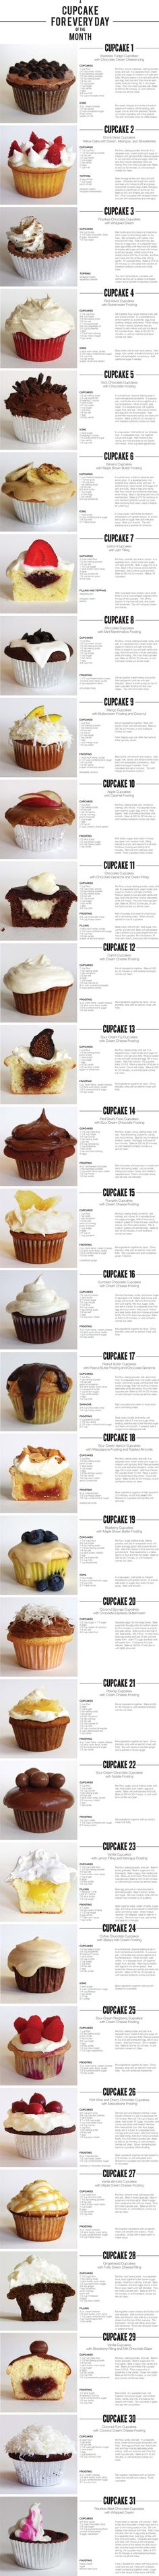 Cupcakes...yes please